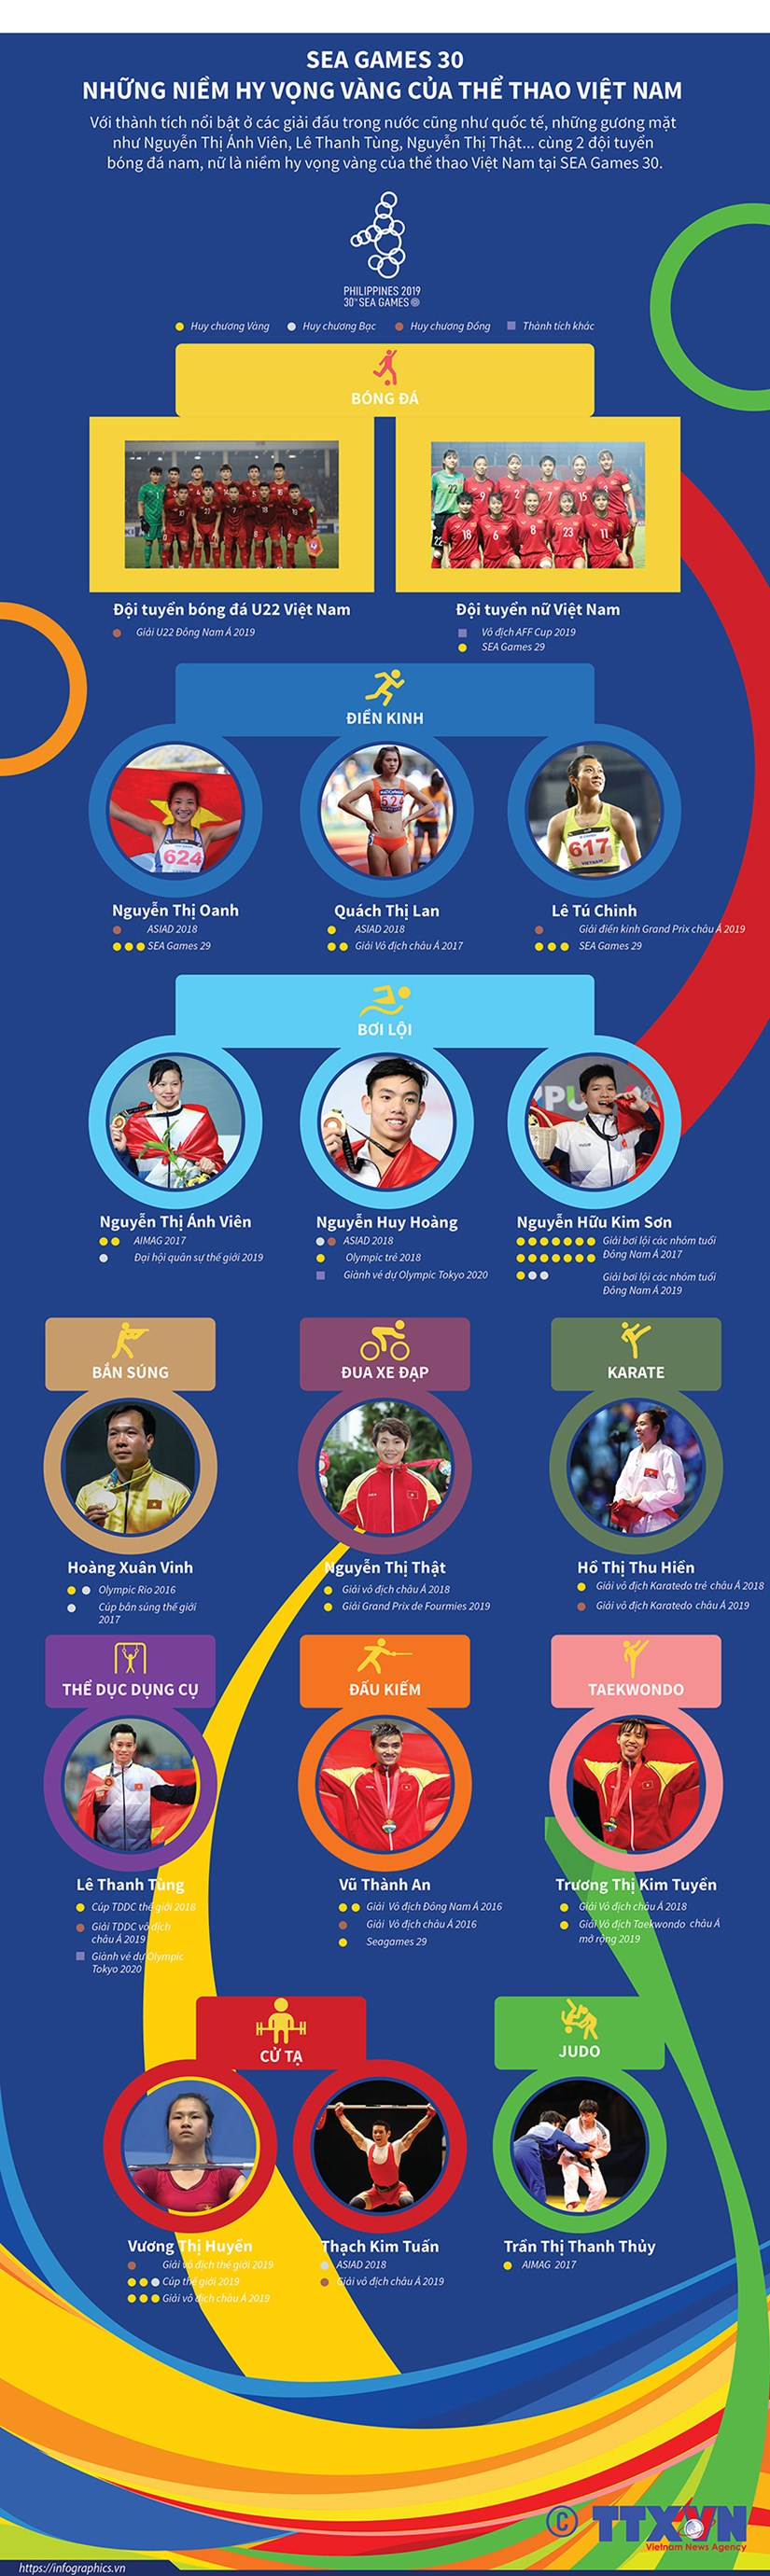 [Infographics] SEA Games 30: Nhung hy vong vang cua the thao Viet Nam hinh anh 1